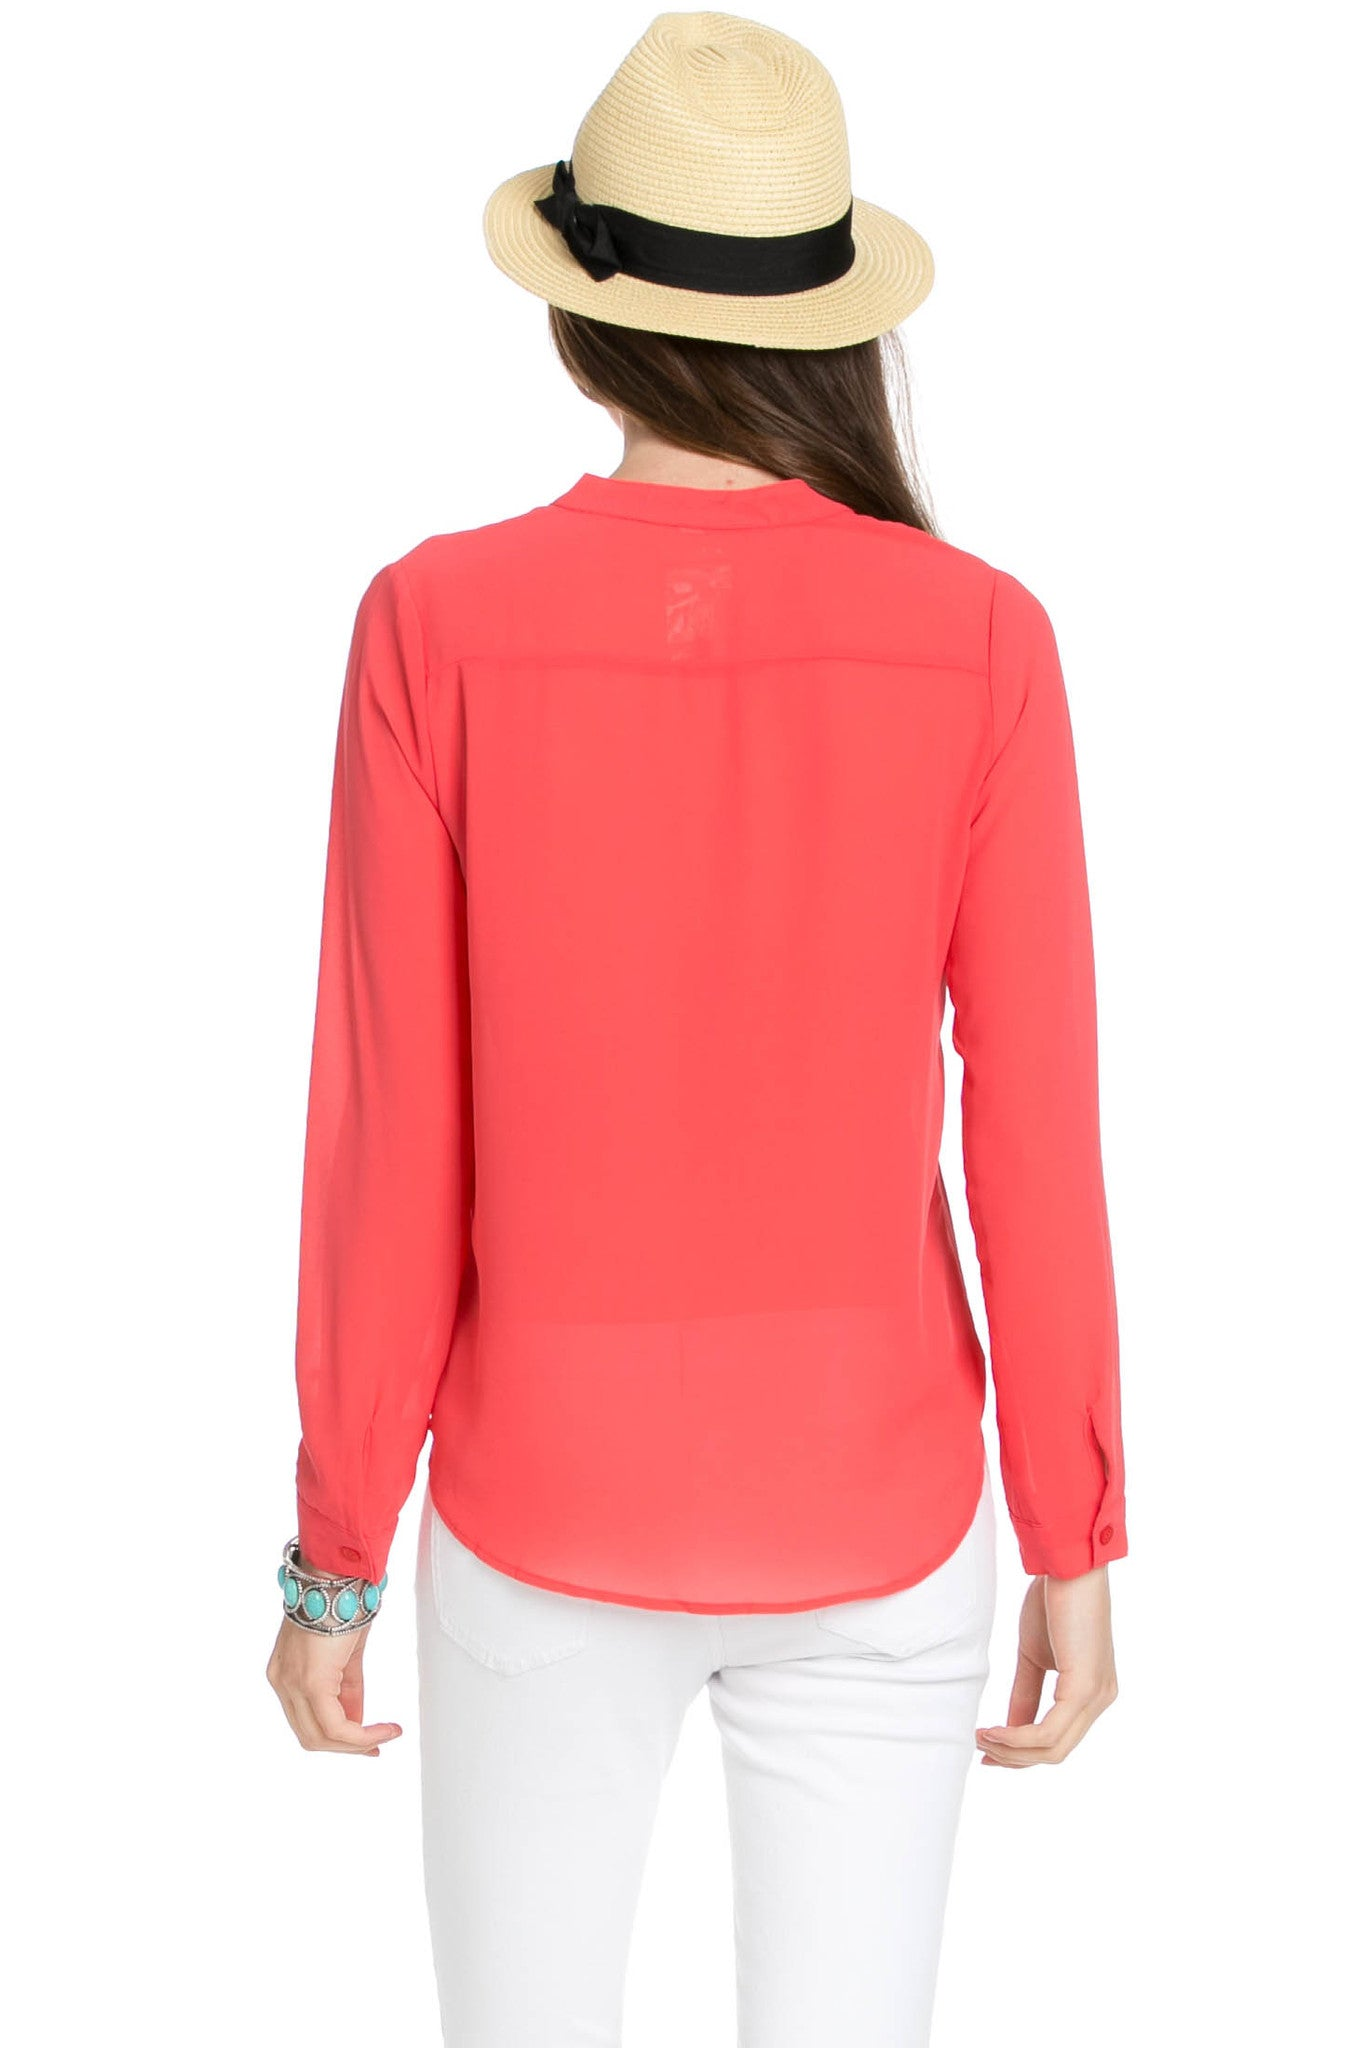 V-Neck Chiffon Blouse Coral - Tops - My Yuccie - 3